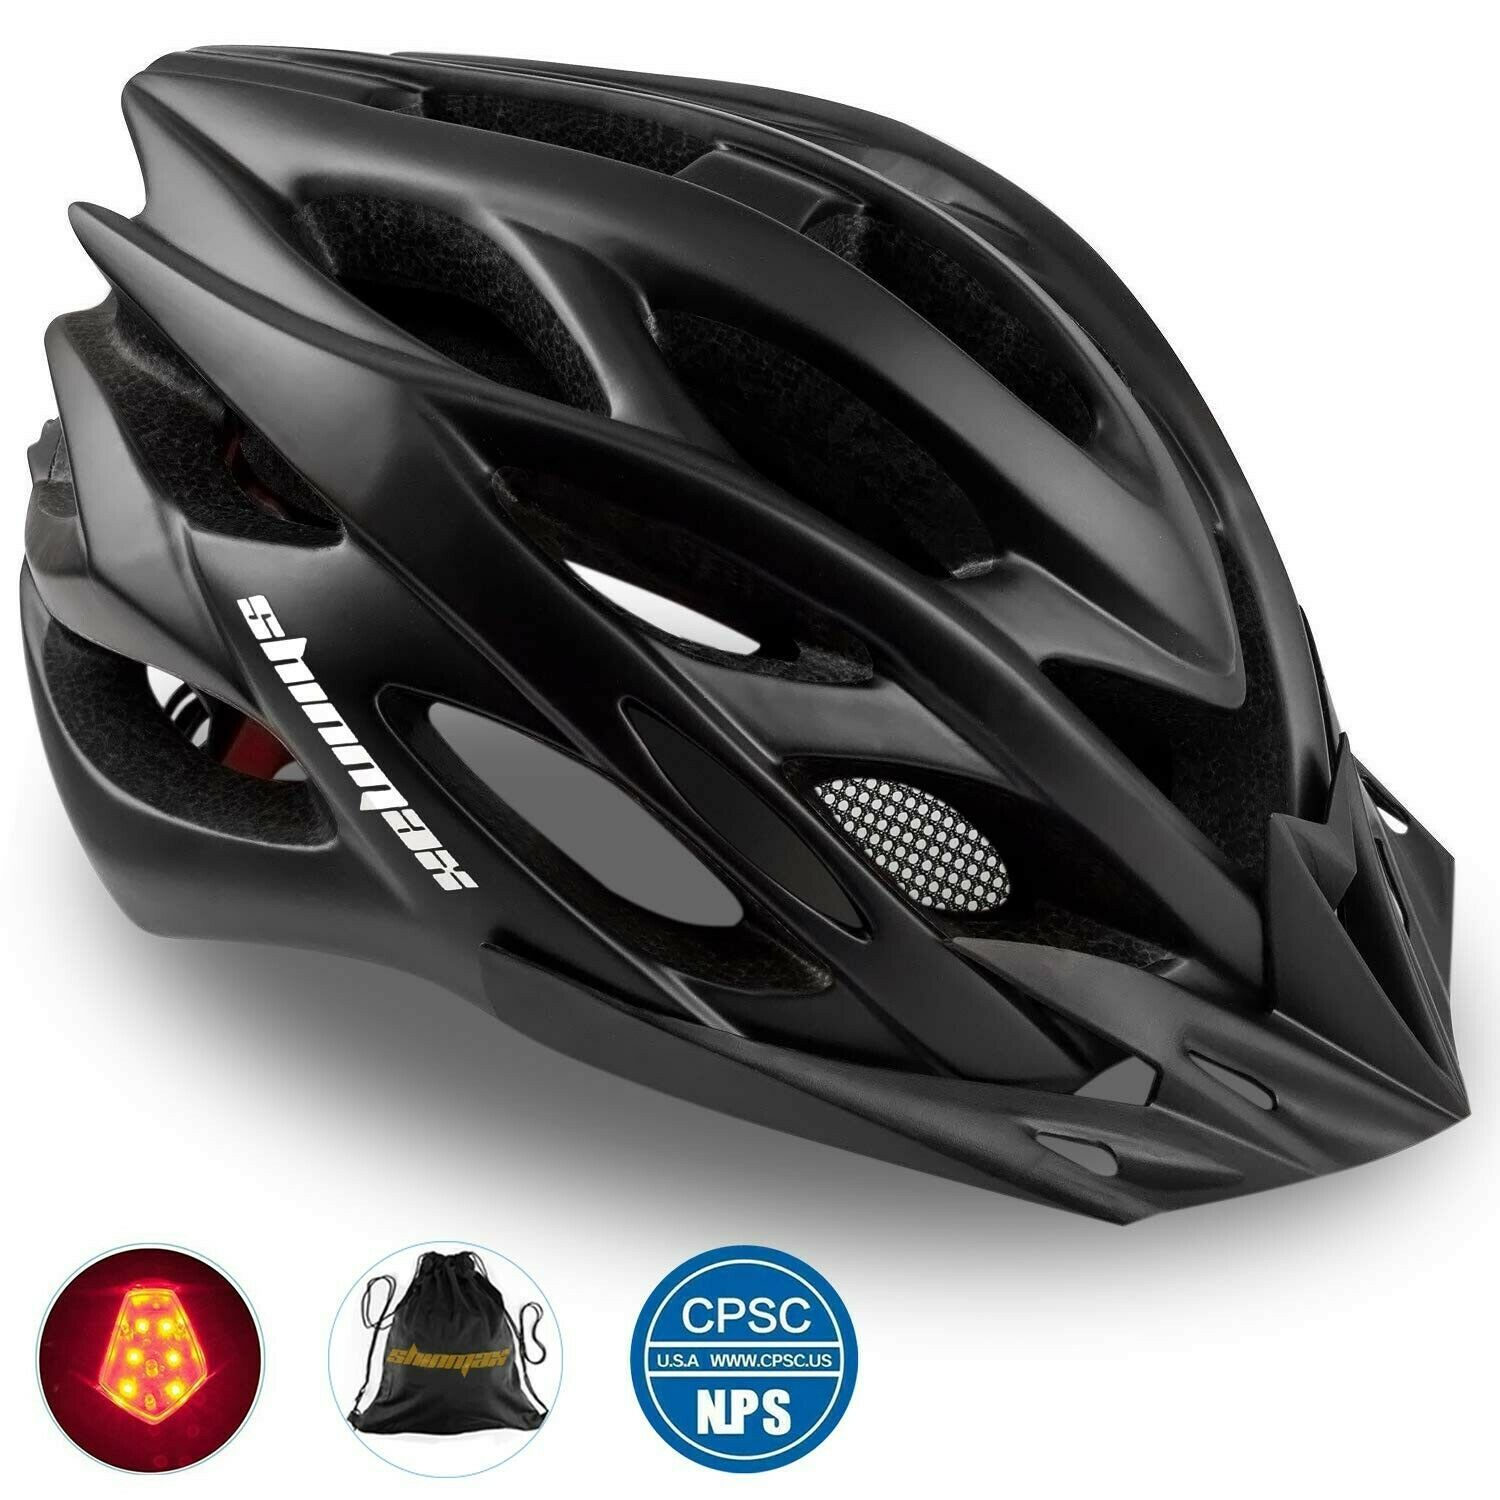 Details About Shinmax Bike Helmet Cpsc Ce Certified Adjustable